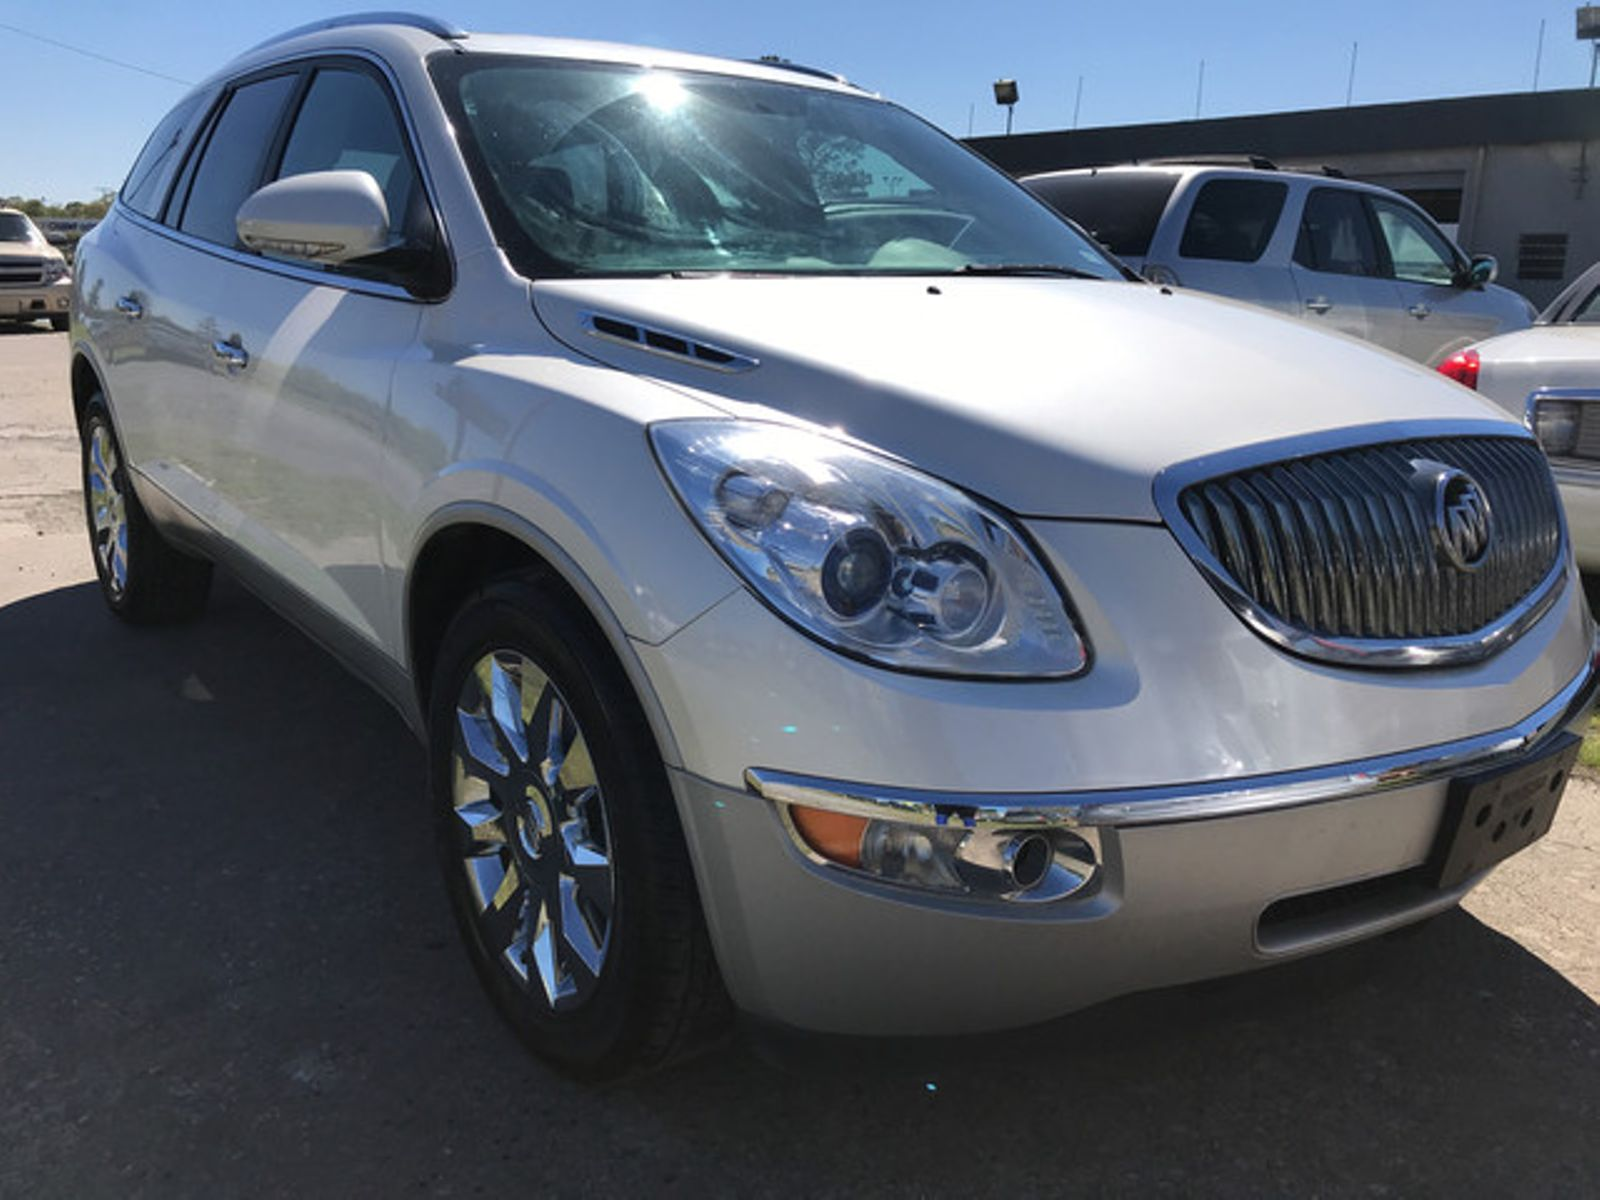 buick enclave towing capacity 2018 2019 new car reviews by girlcodemovement. Black Bedroom Furniture Sets. Home Design Ideas